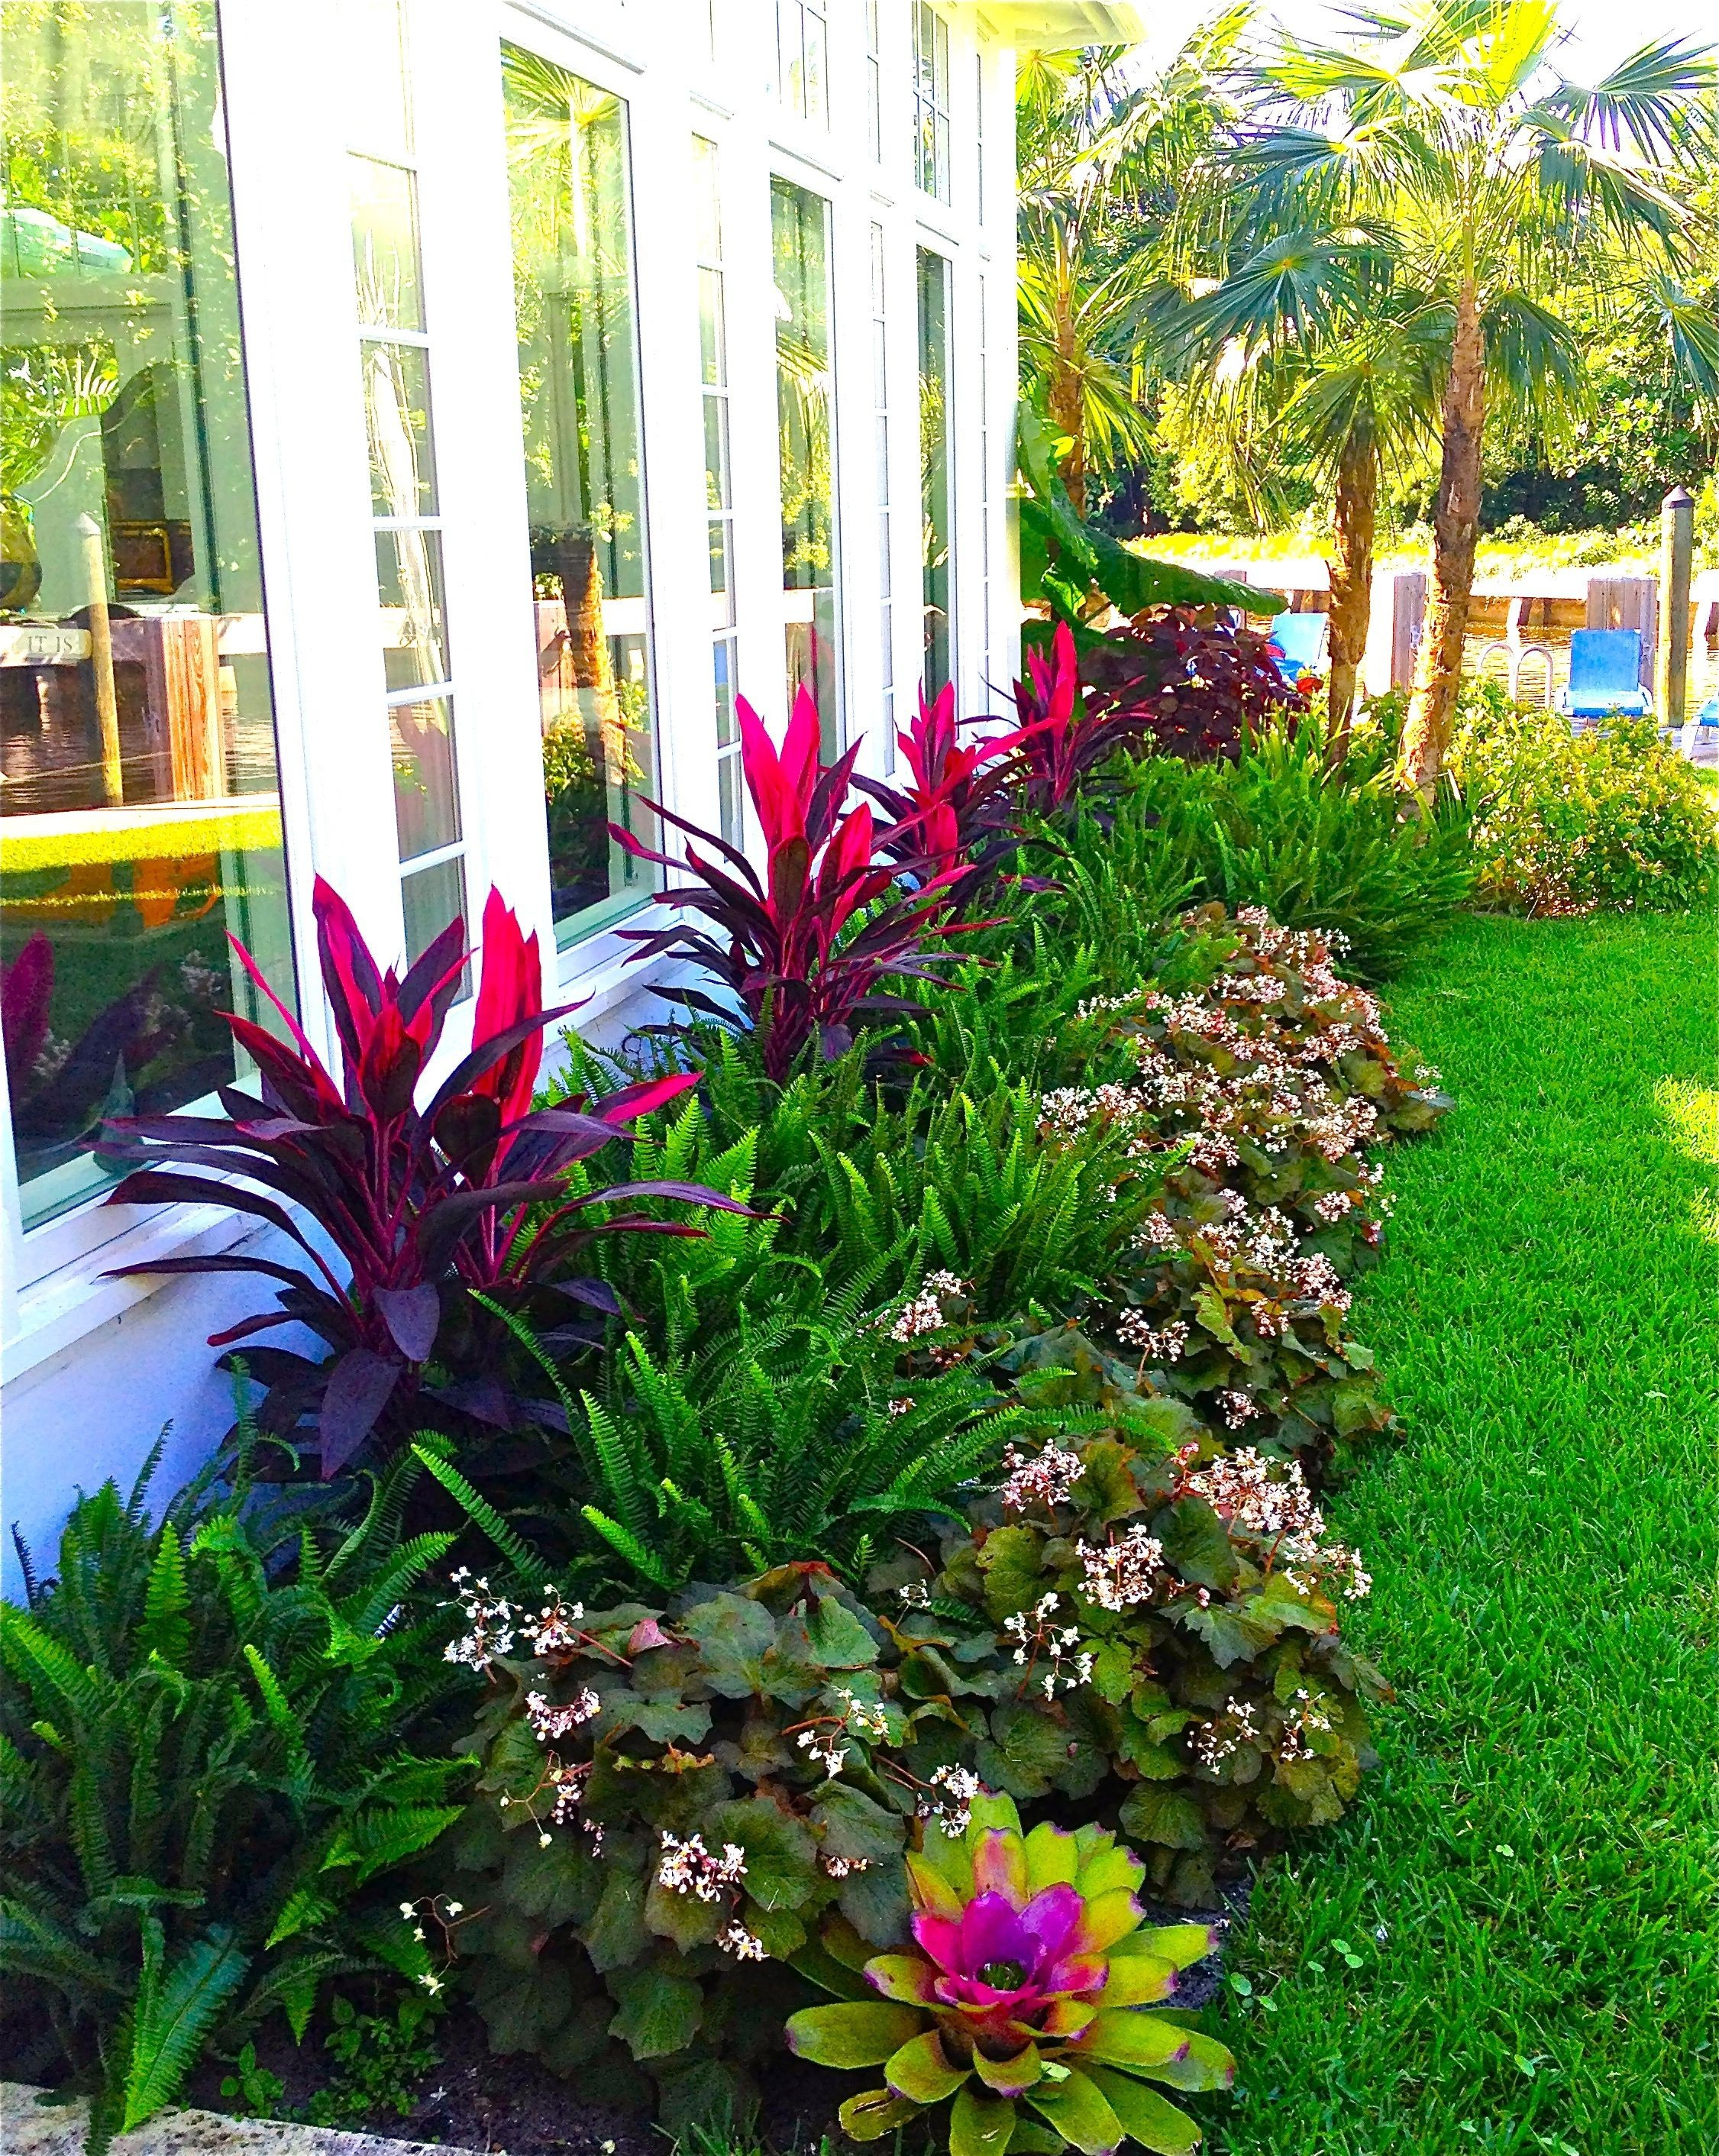 Florida Landscaping Ideas For Backyard Stunning Way To Add Tropical with regard to Florida Backyard Landscaping